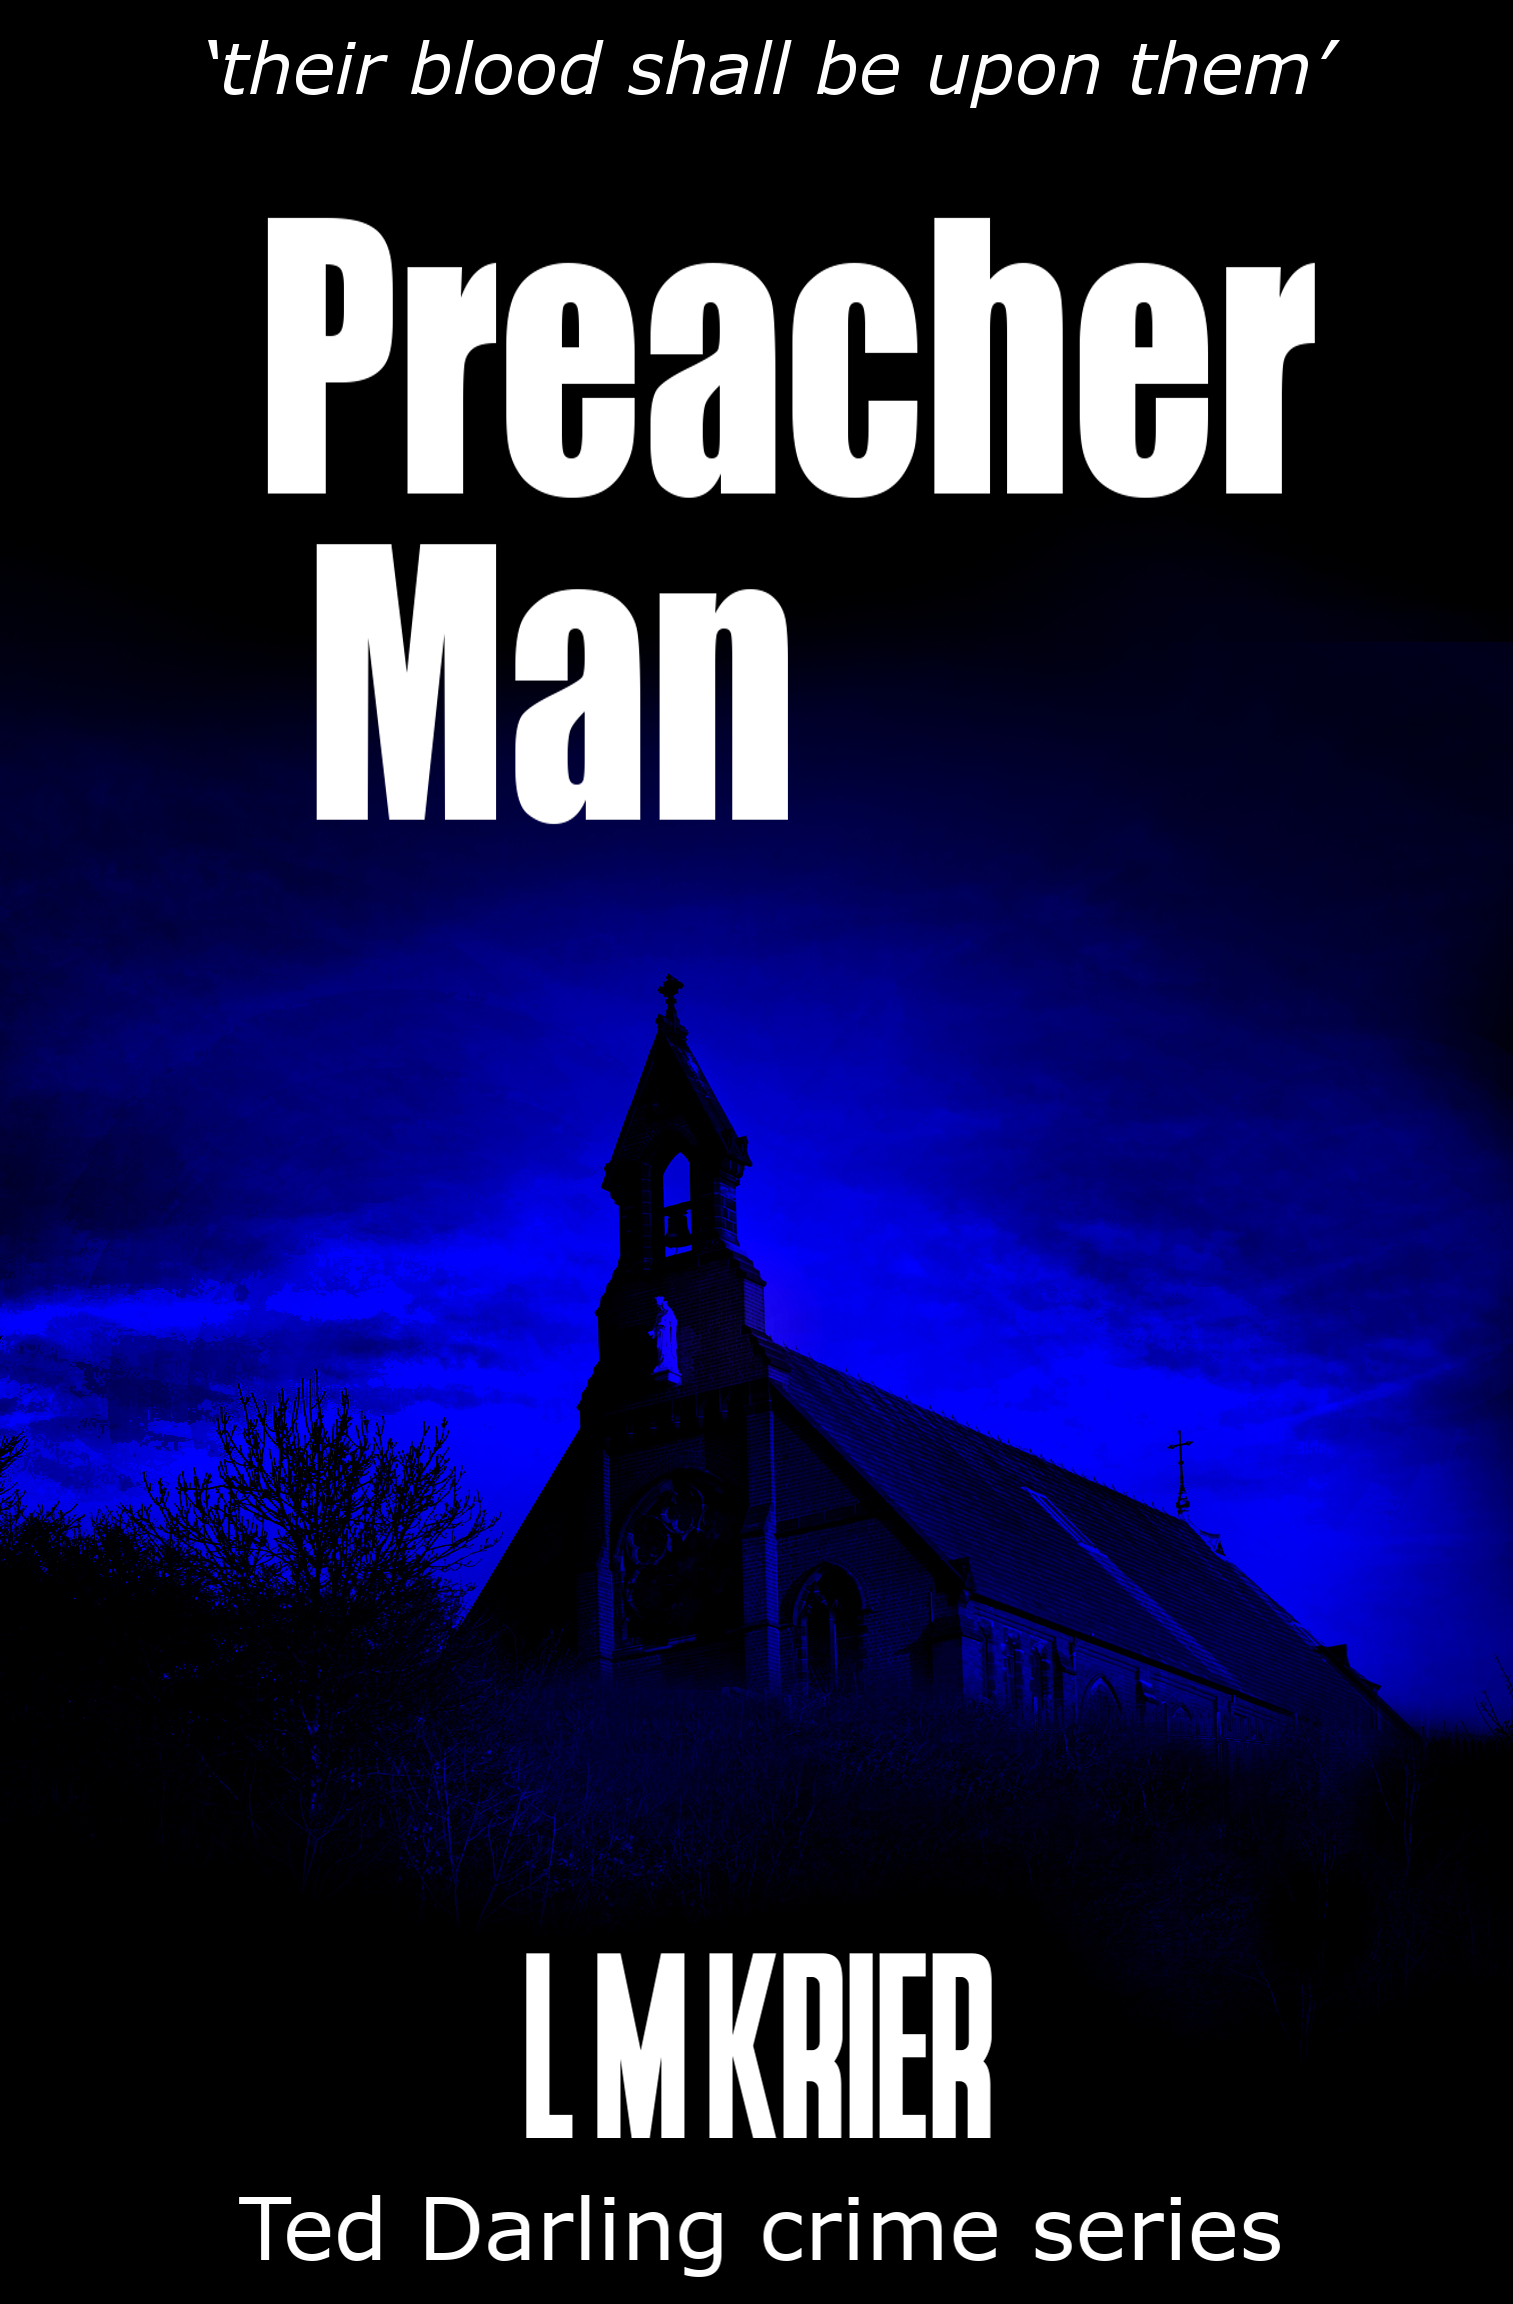 Ted Darling Crime Series - 09 - Preacher Man